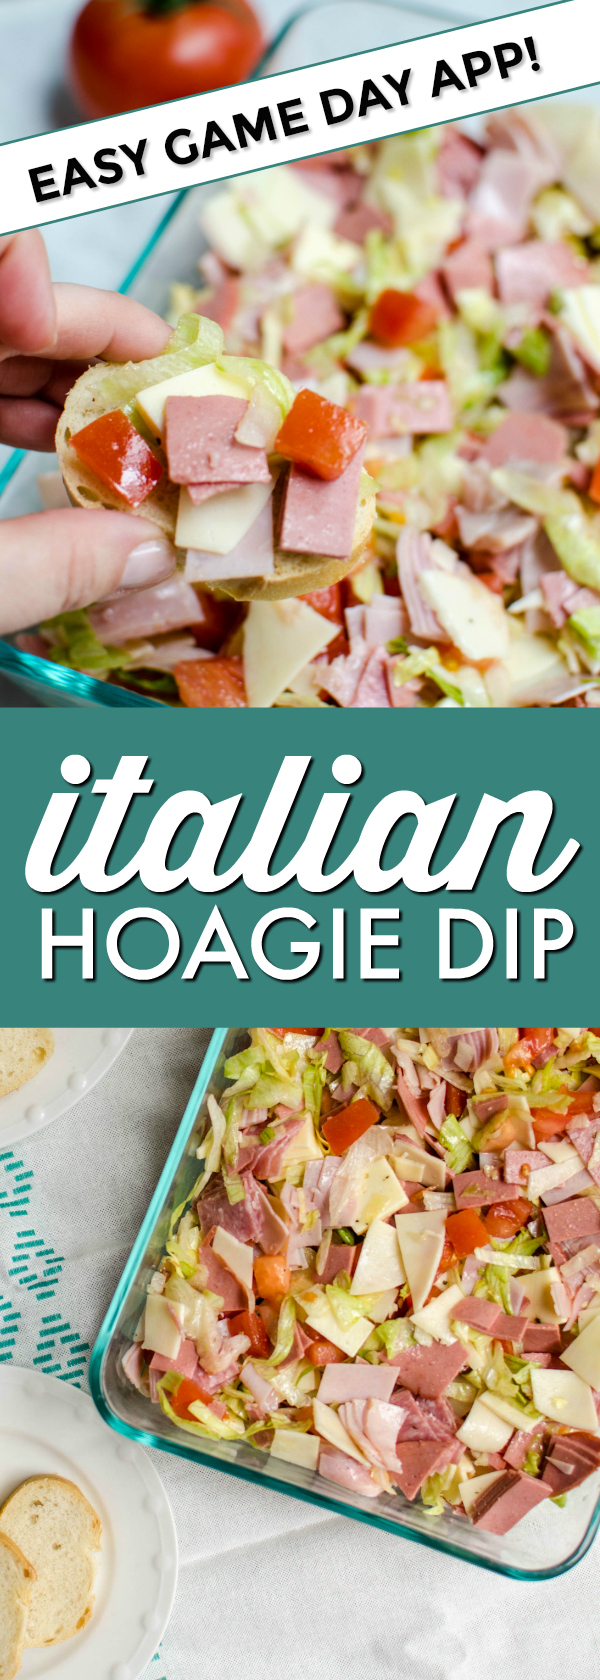 Your favorite Italian hoagie flavors and meats, chopped and served dip-style with crusty baguette slices.